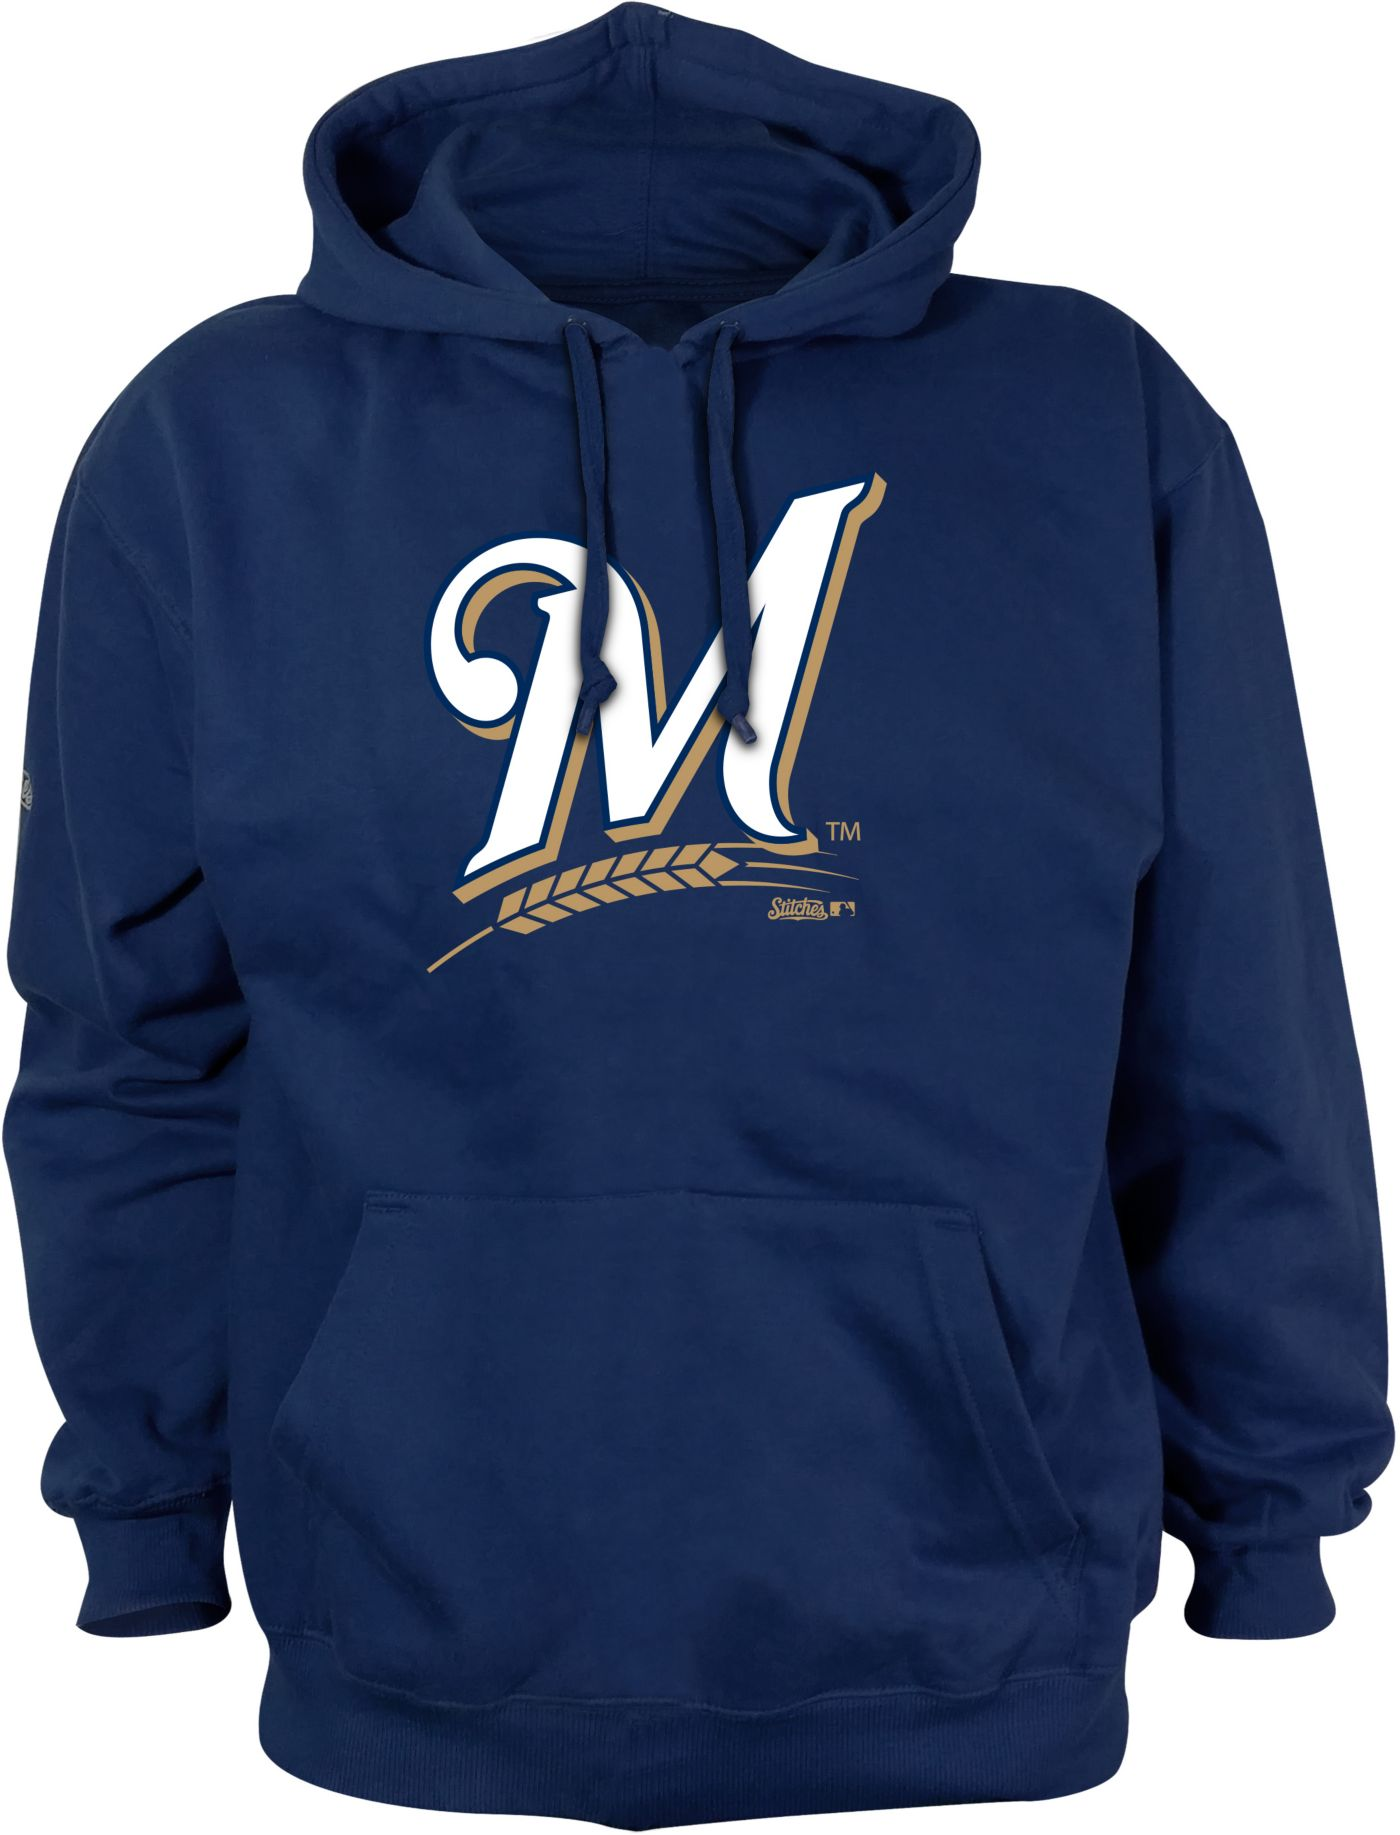 Stitches Men's Milwaukee Brewers Pullover Hoodie